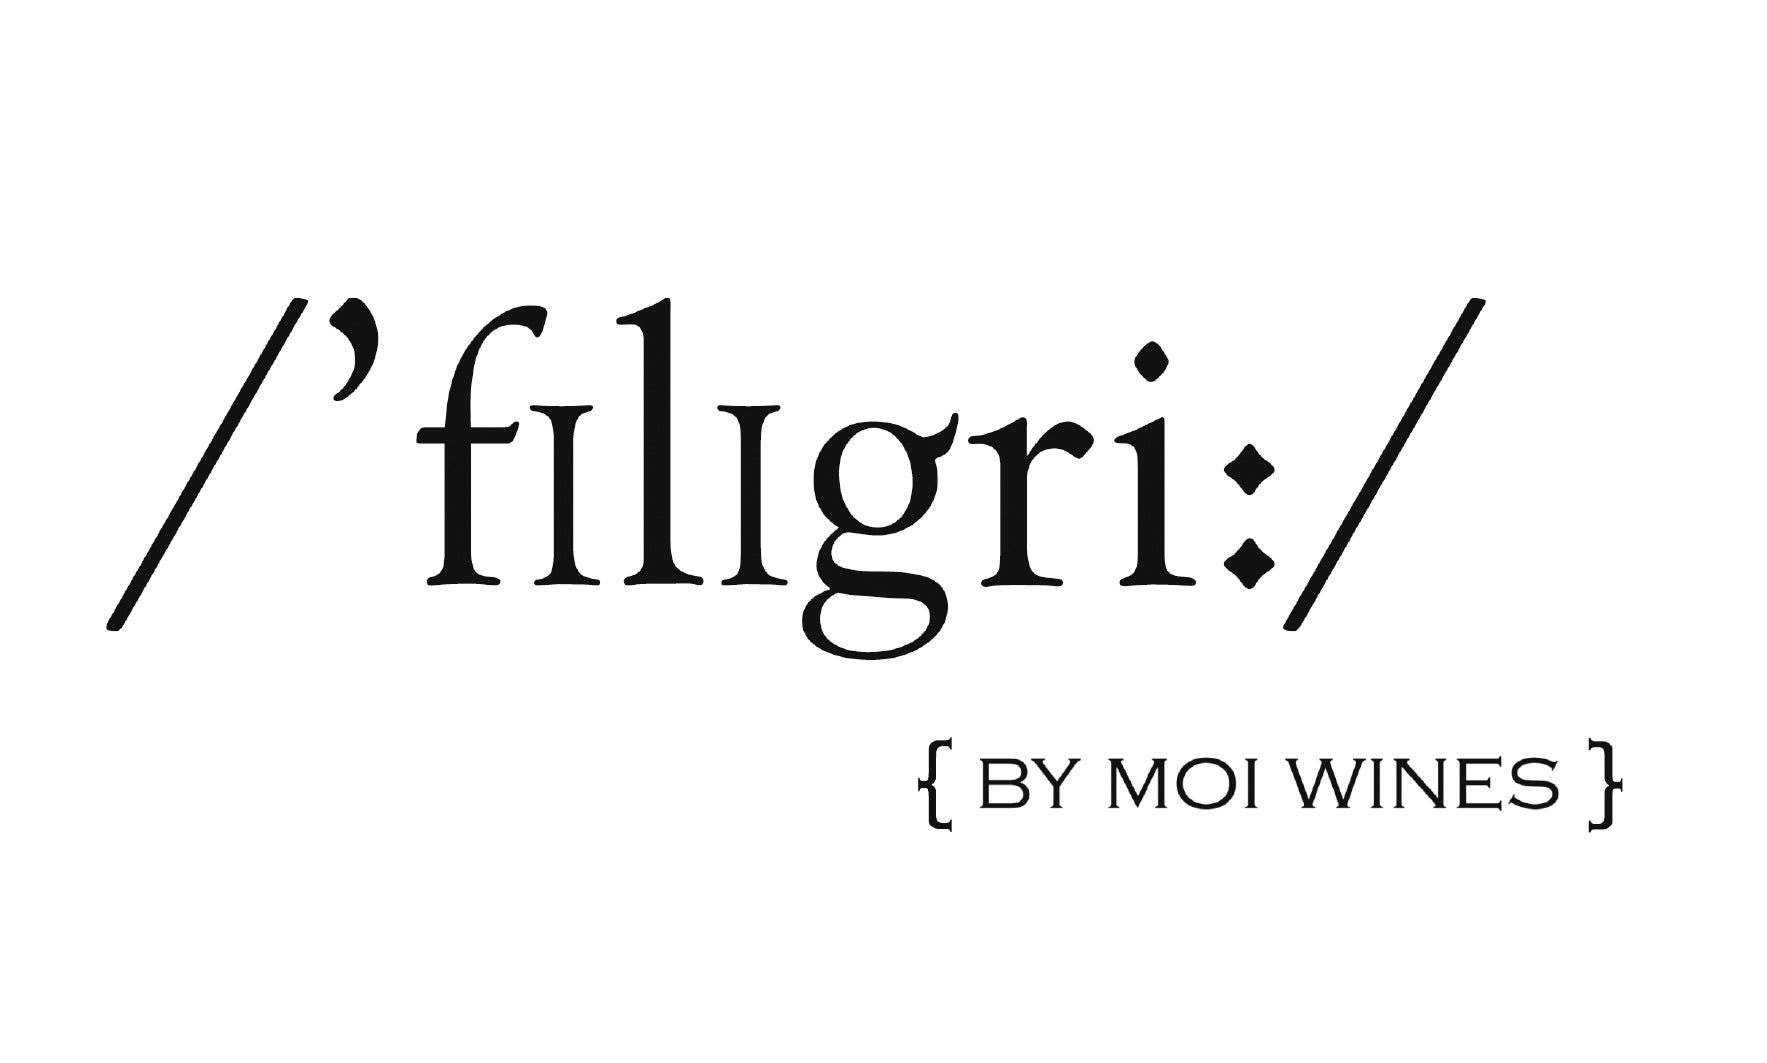 Filigri By Moi Wines